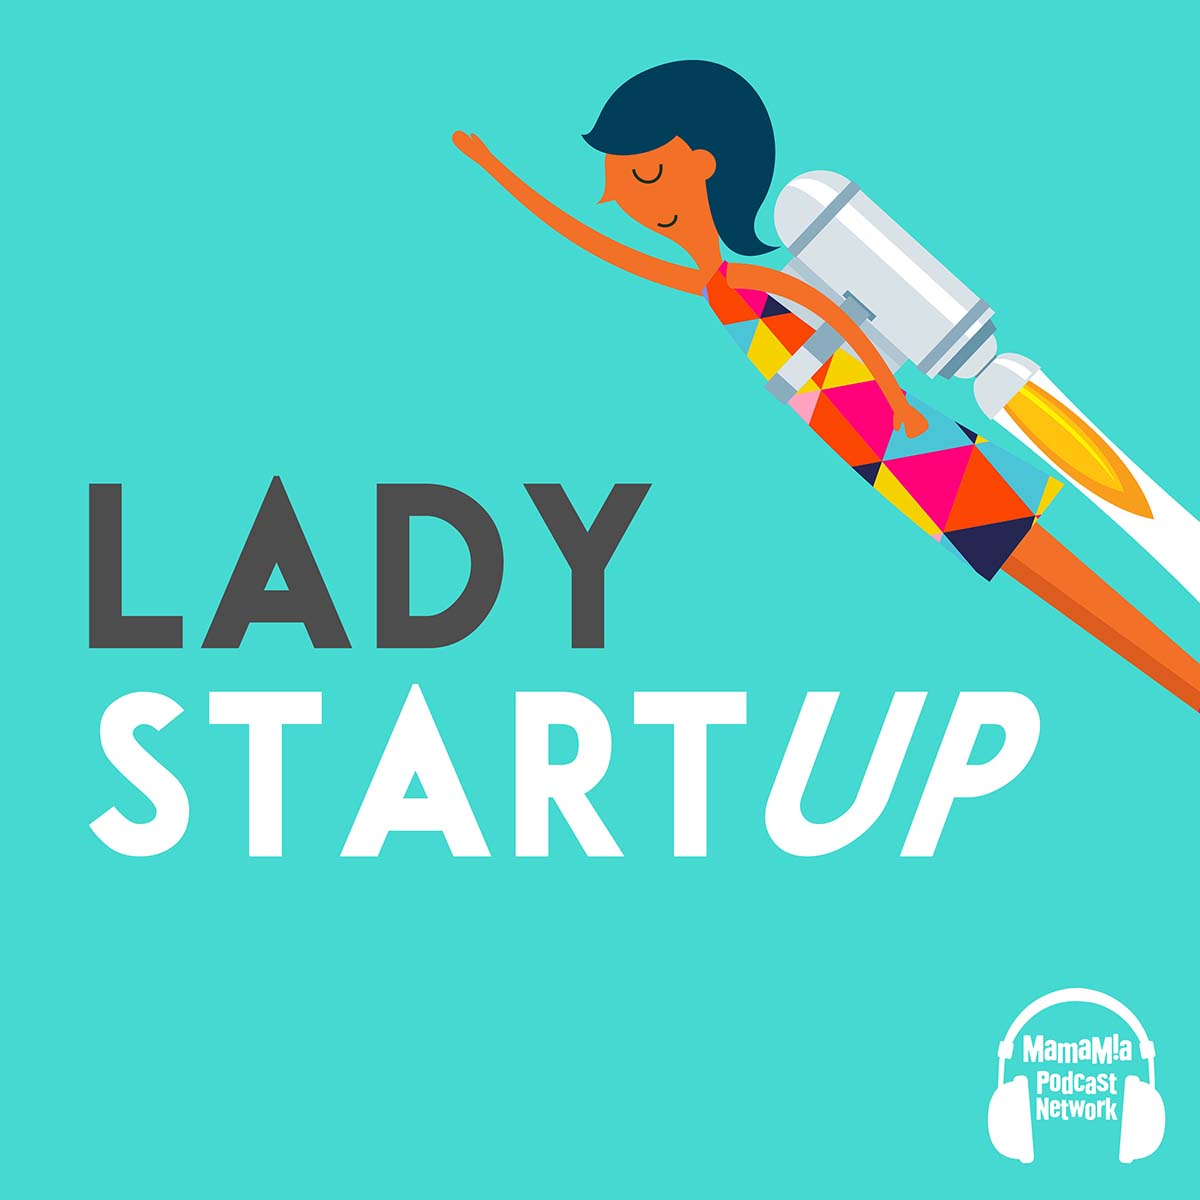 The Lady Start Up logo featuring a woman with a rocket on her back